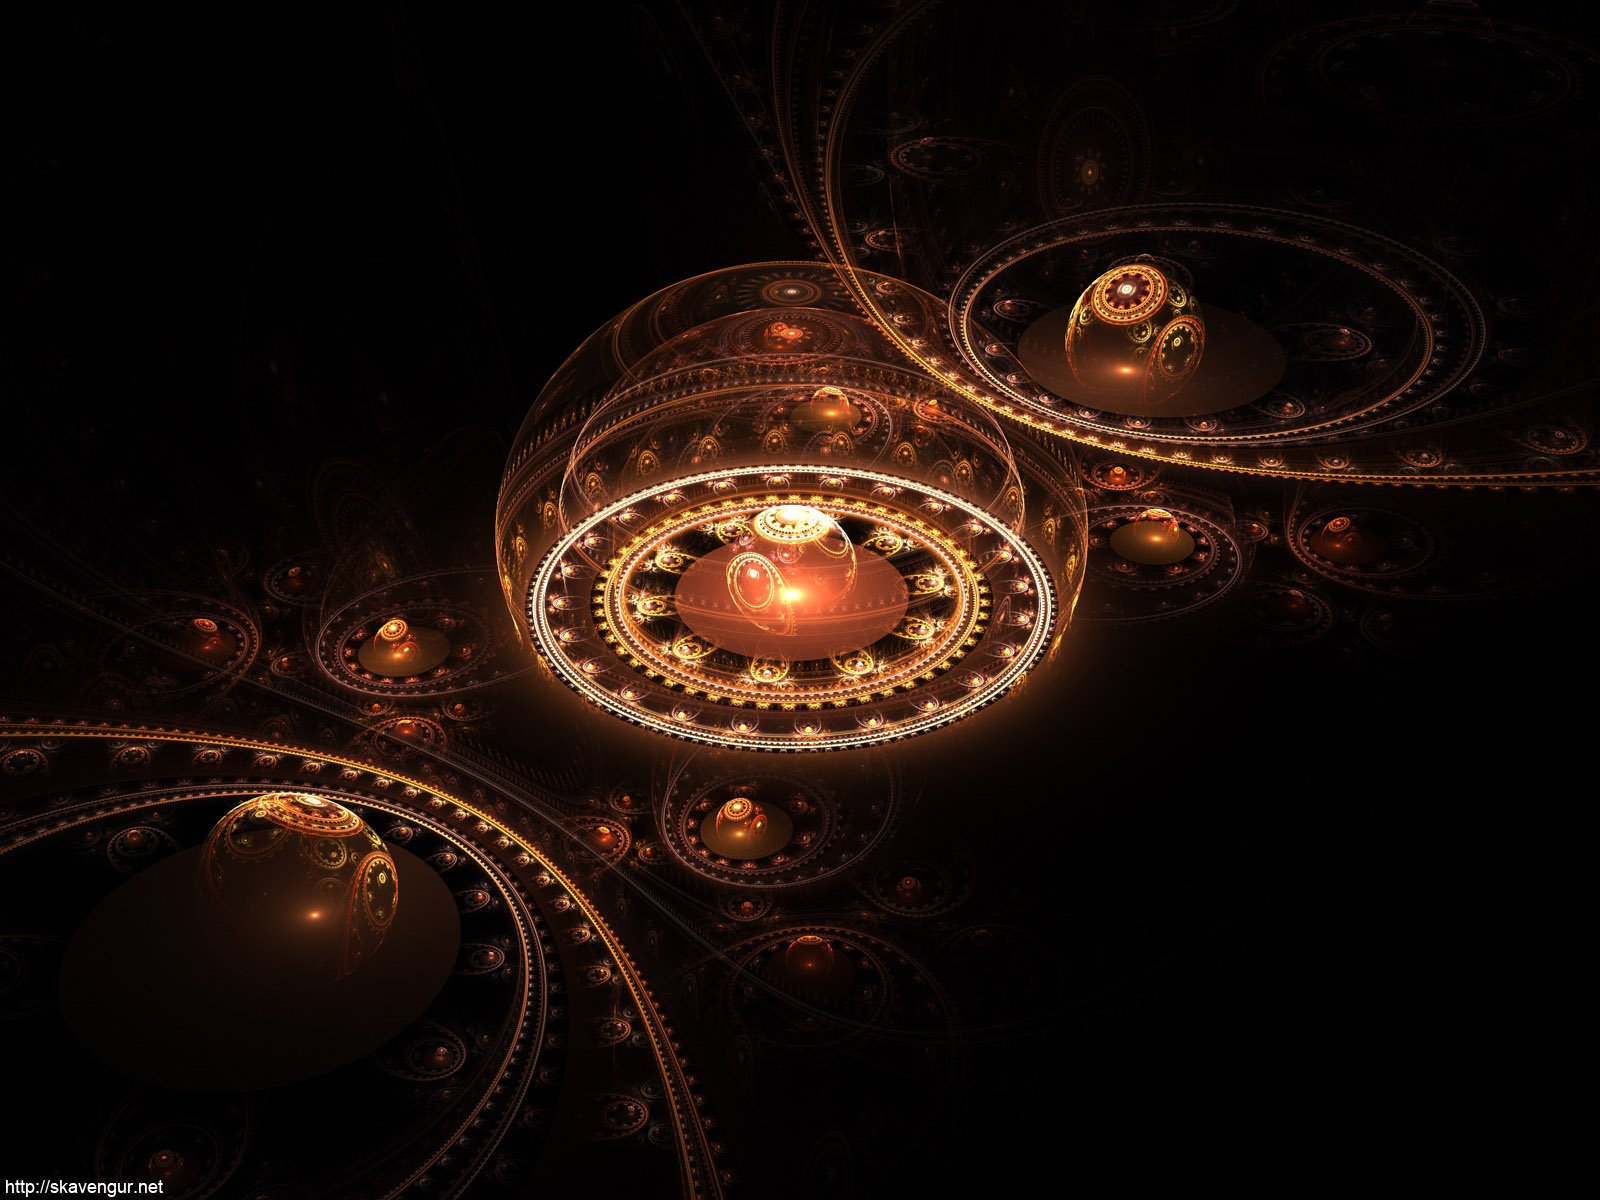 Abstrakt - Orange  Abstrakt Künstlerisch Farben Muster CGI Shapes Steampunk Texture Wallpaper